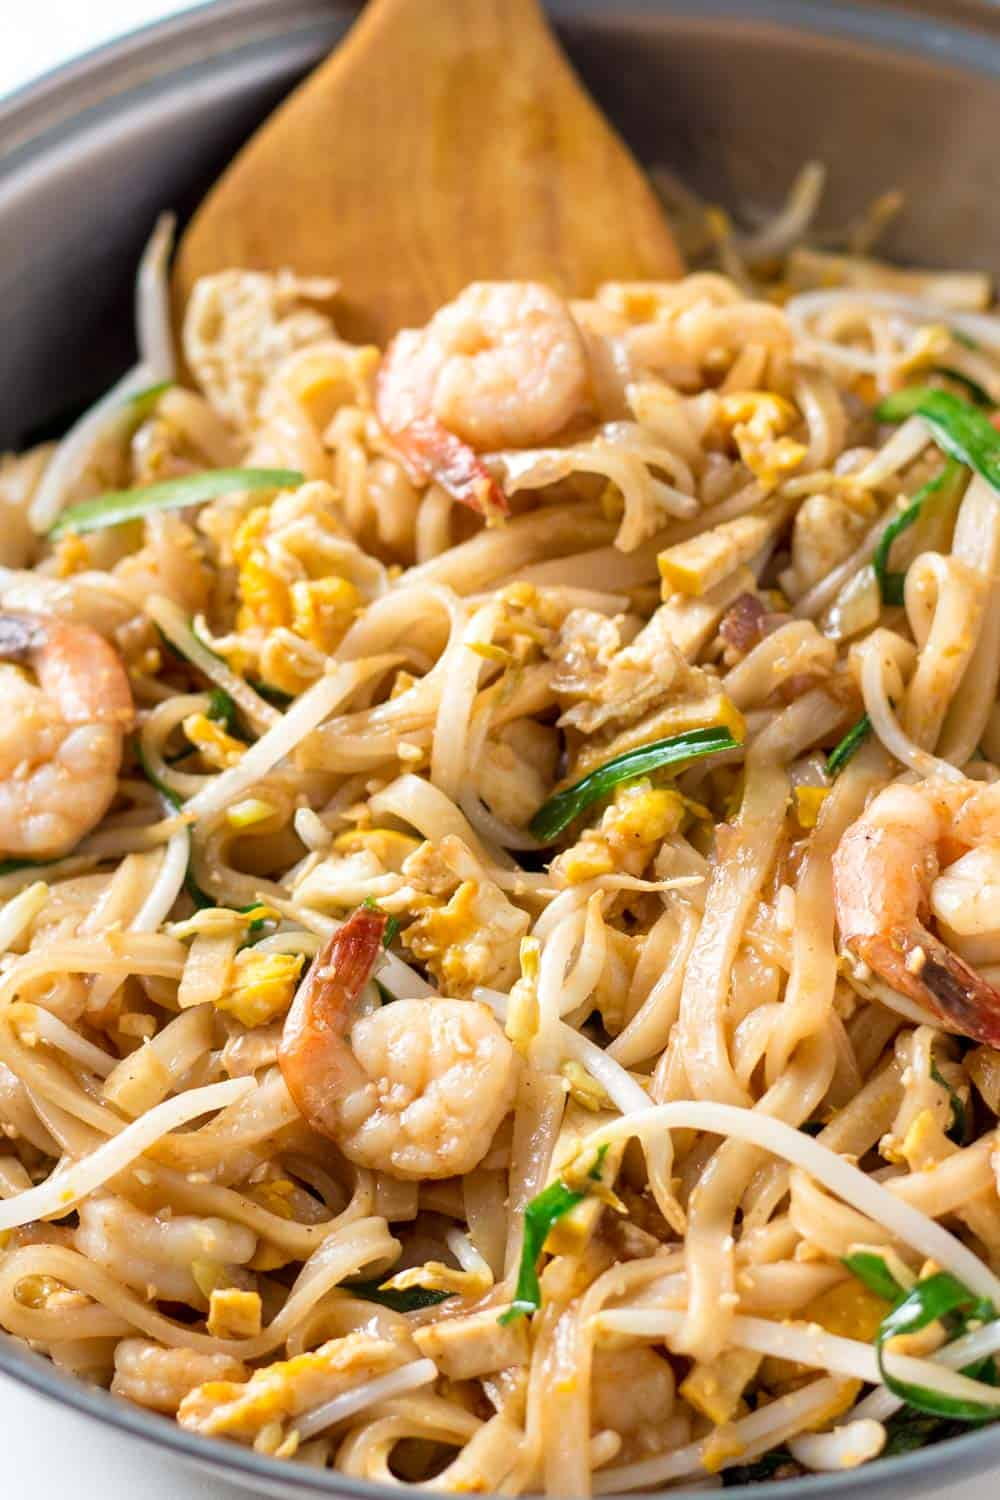 The best shrimp pad thai recipe leelalicious this is the best shrimp pad thai recipe i learnt it in a cooking class forumfinder Choice Image